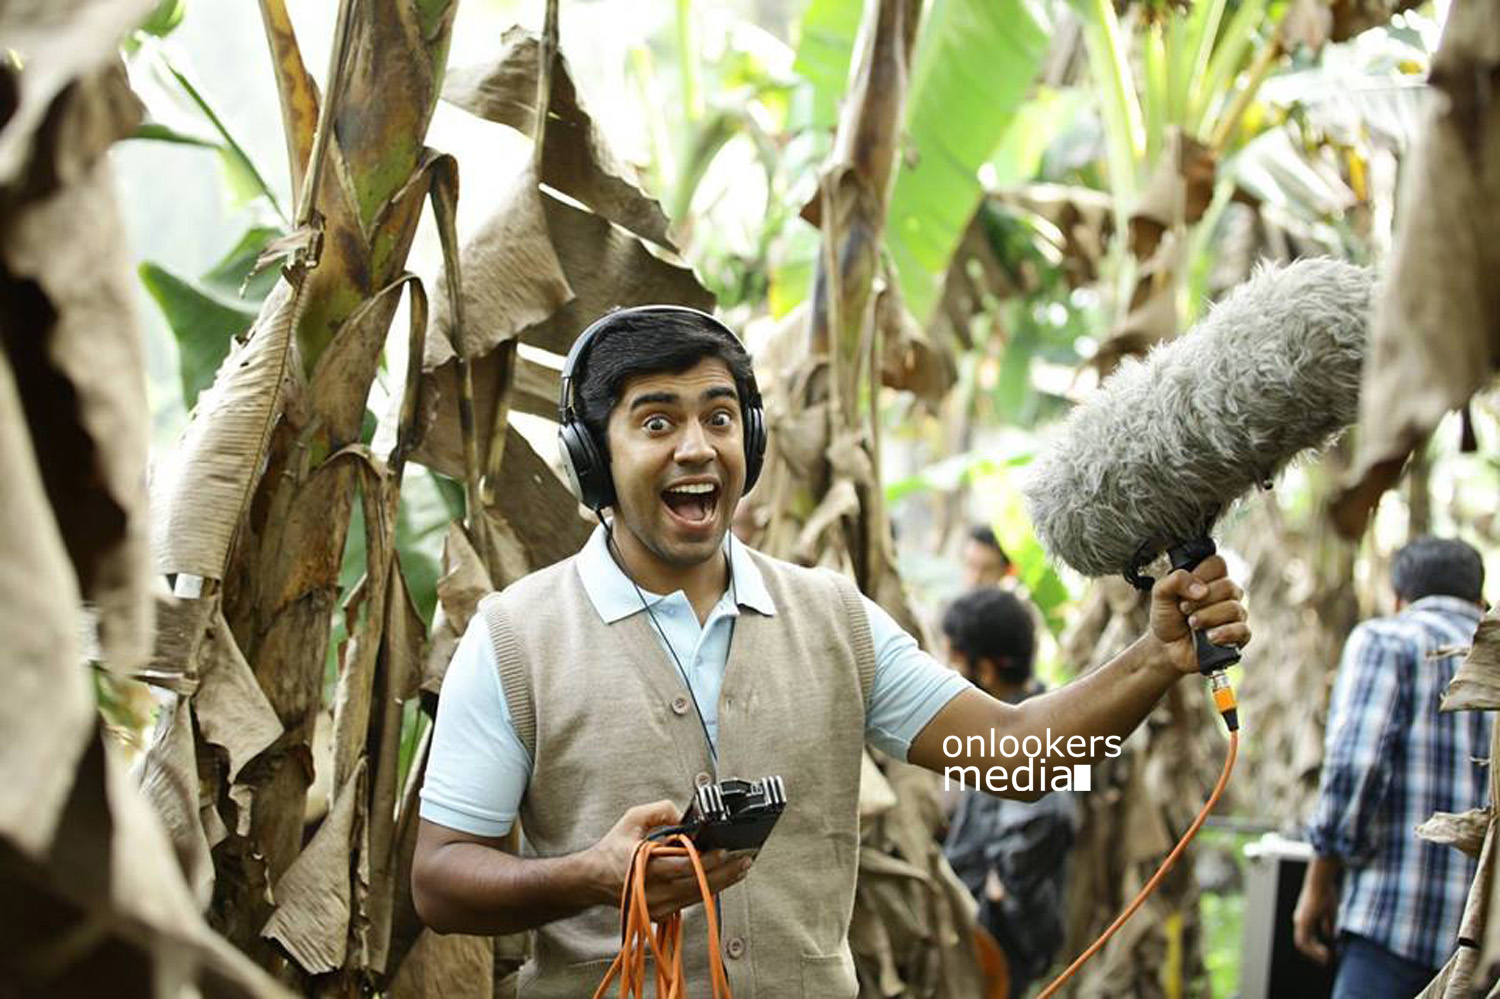 http://onlookersmedia.in/wp-content/uploads/2015/04/Nivin-Pauly-Stills-Images-Photos-Malayalam-Movie-2015-Onlookers-Media-24.jpg